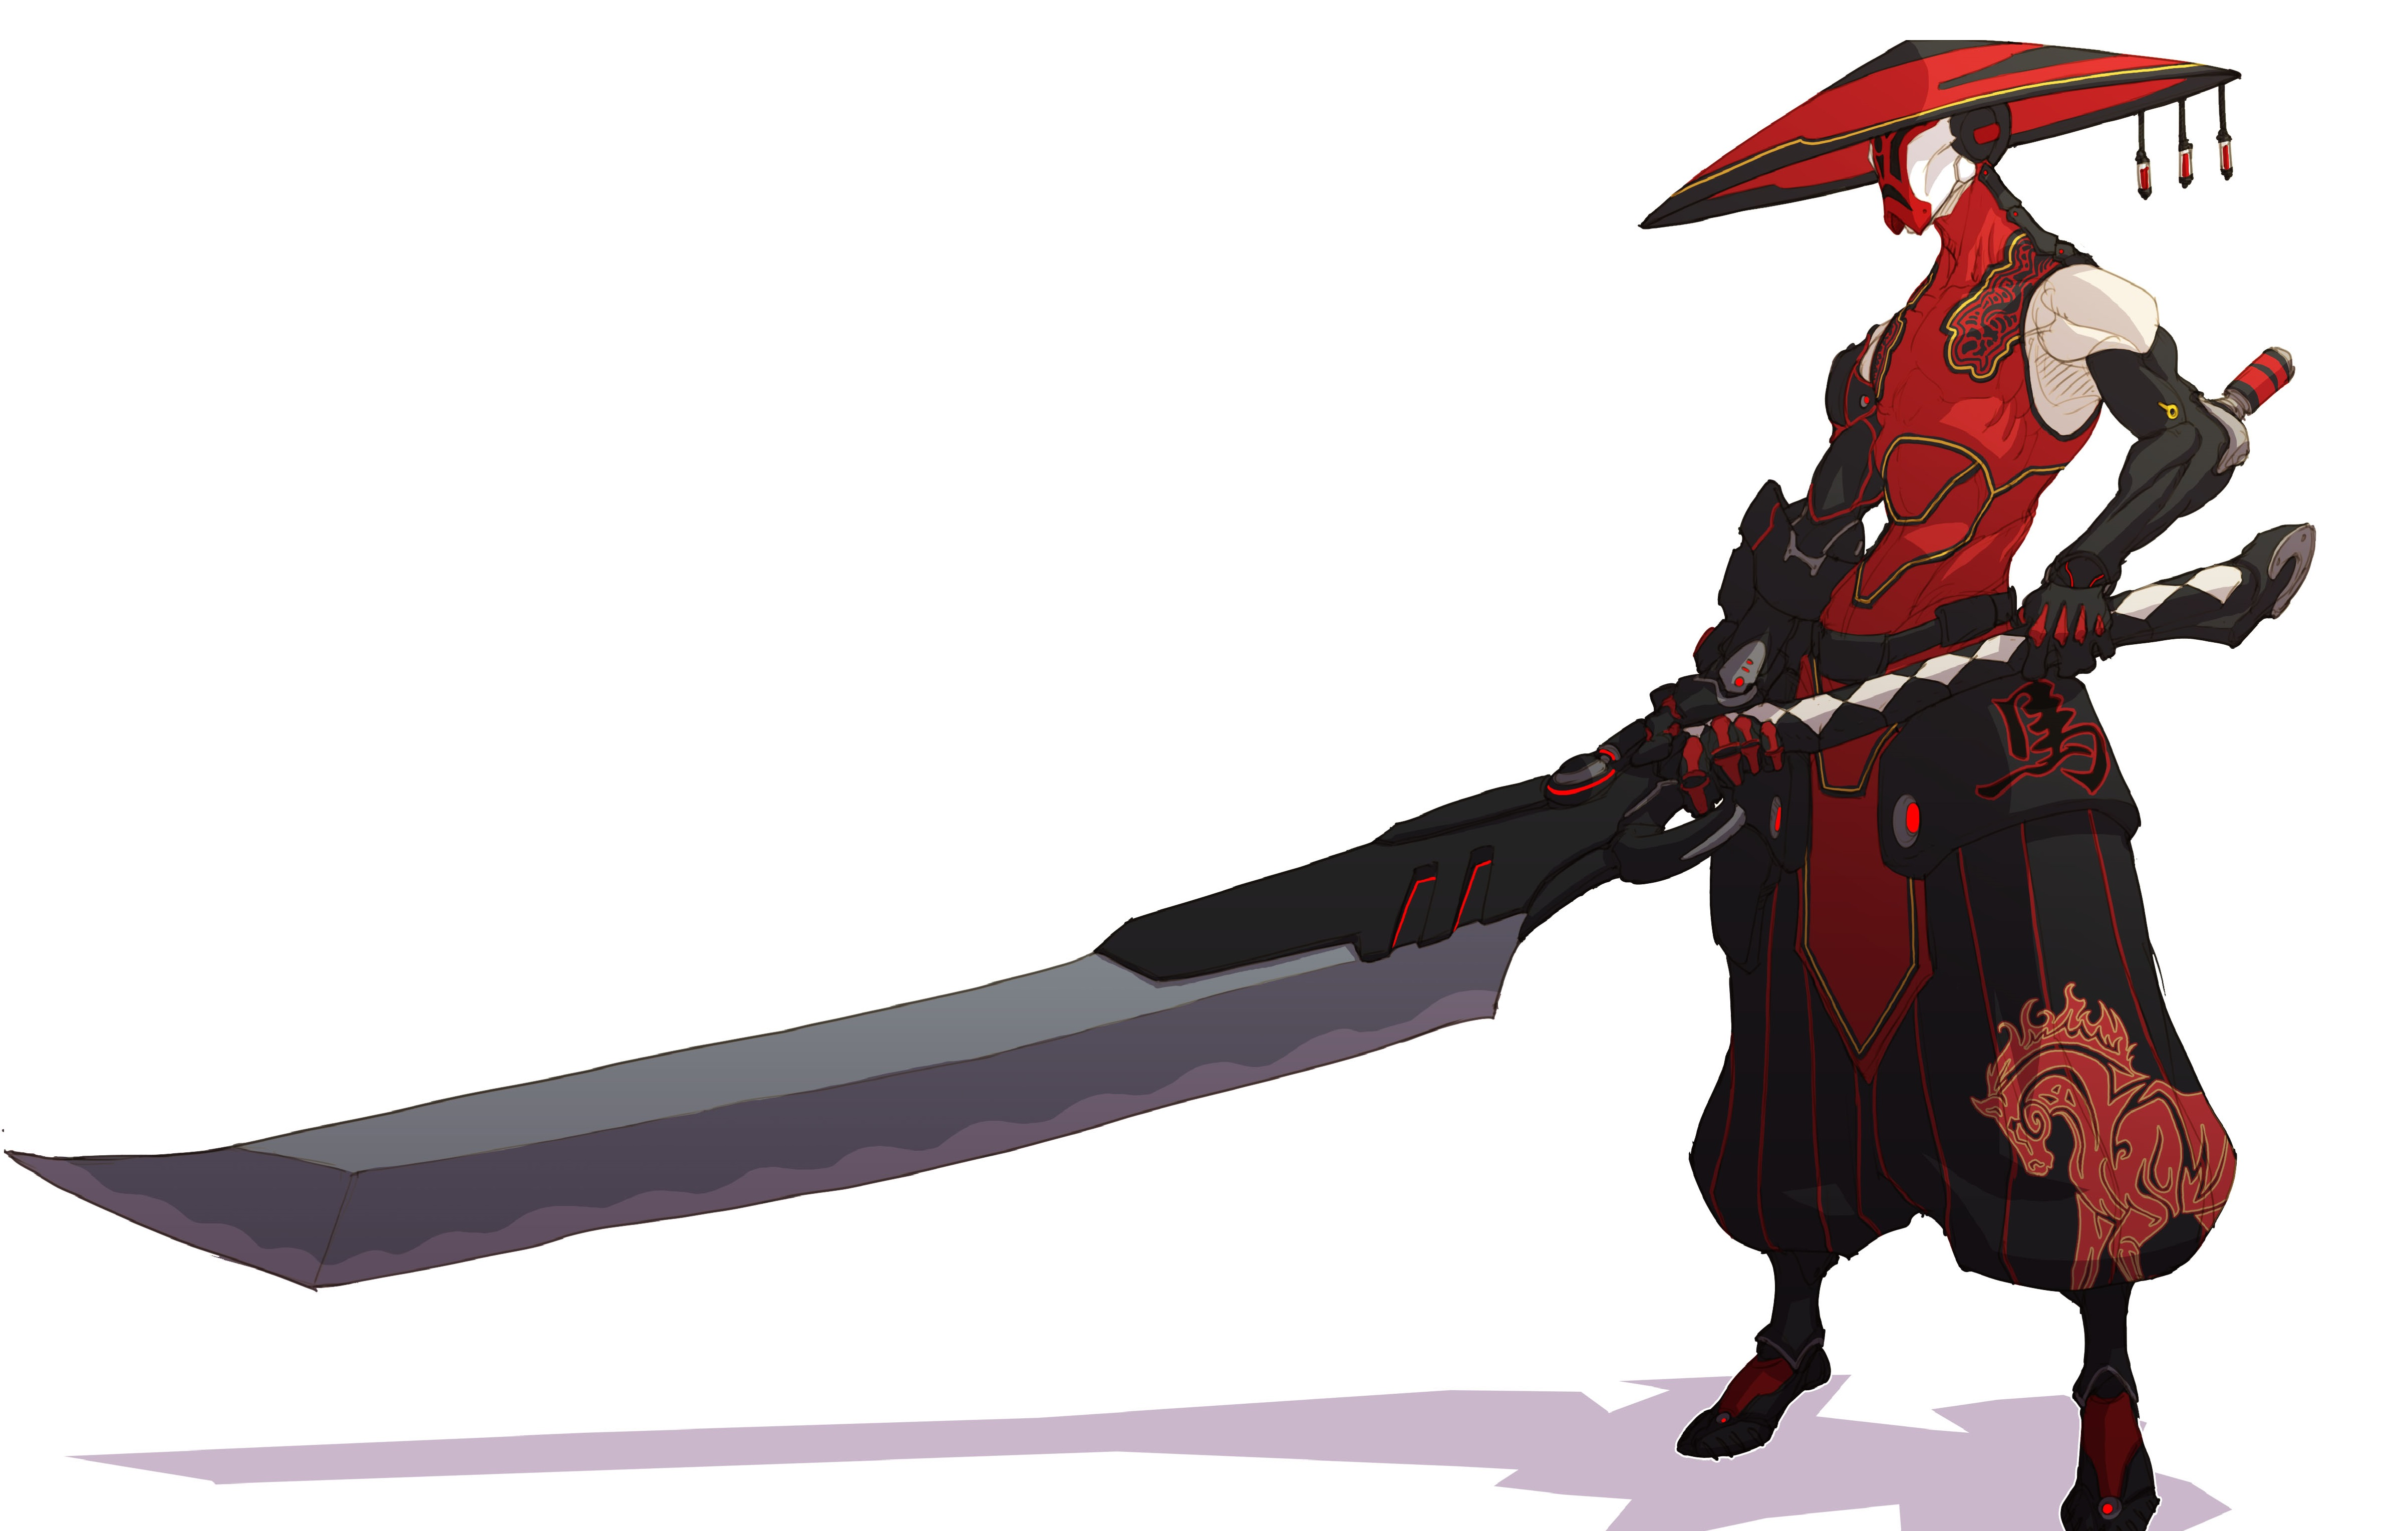 Duelyst takes Hearthstone and adds a little Final Fantasy Tactics